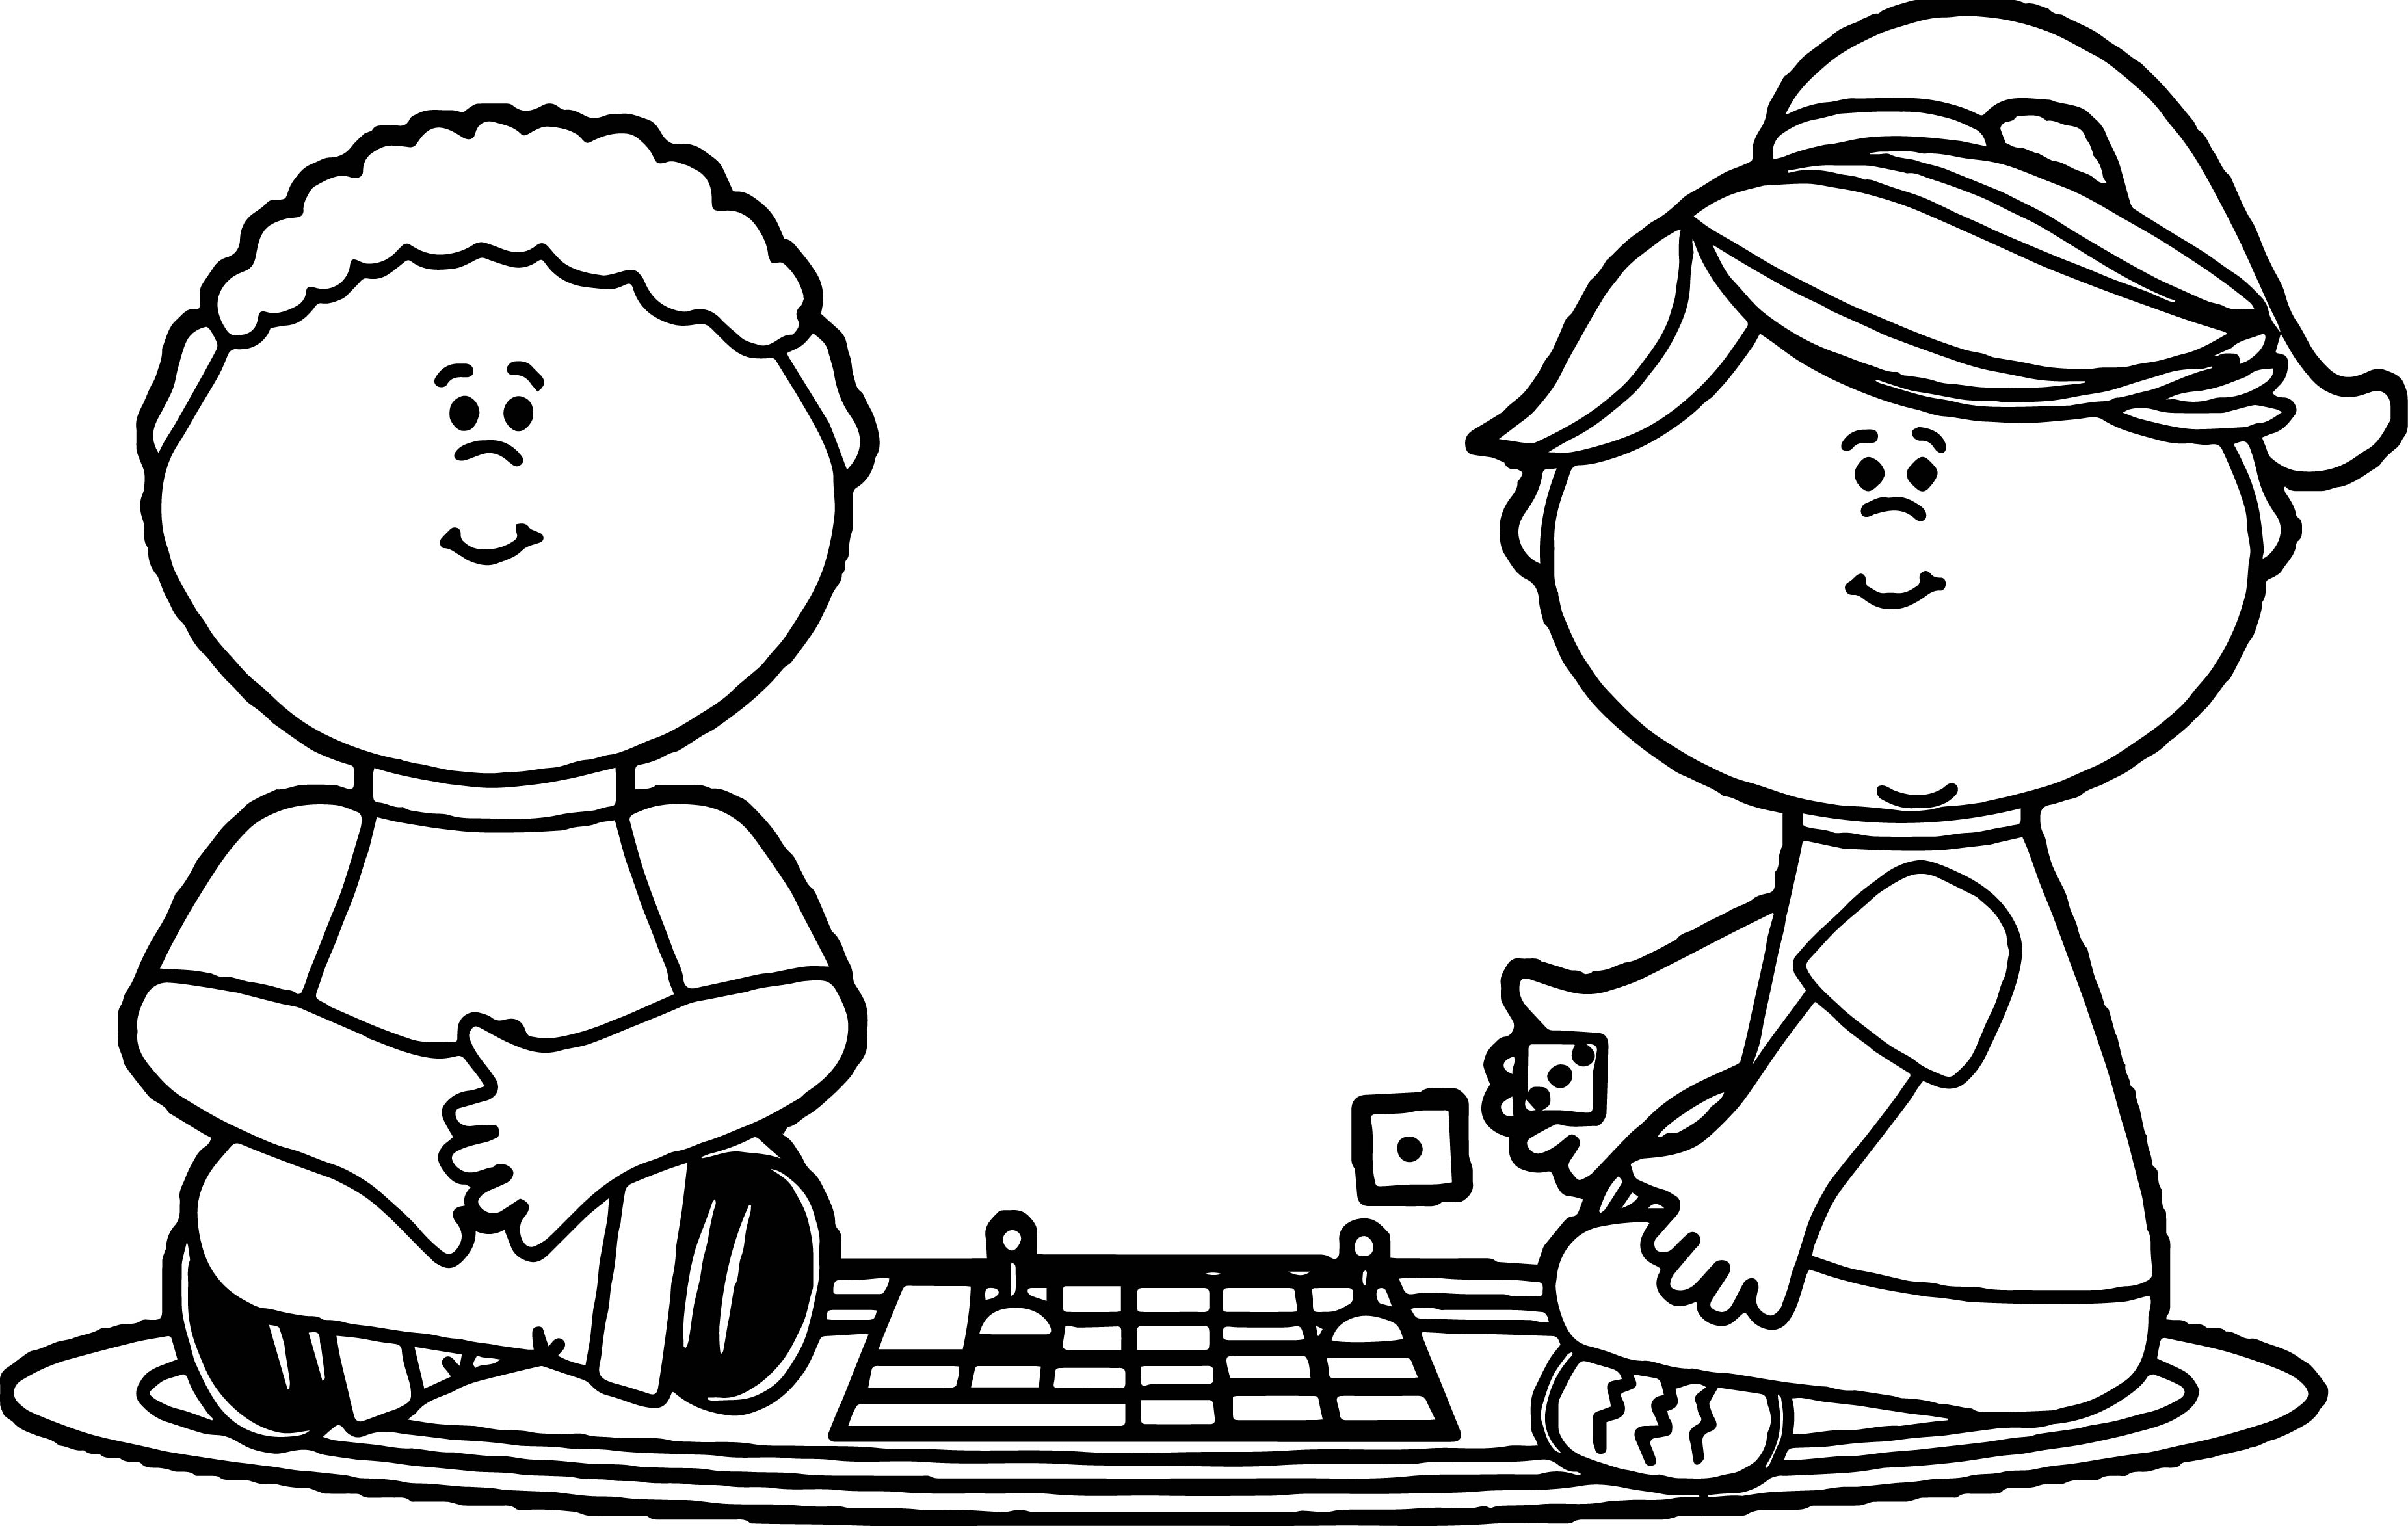 Kids Playing Board Games Coloring Page Wecoloringpage